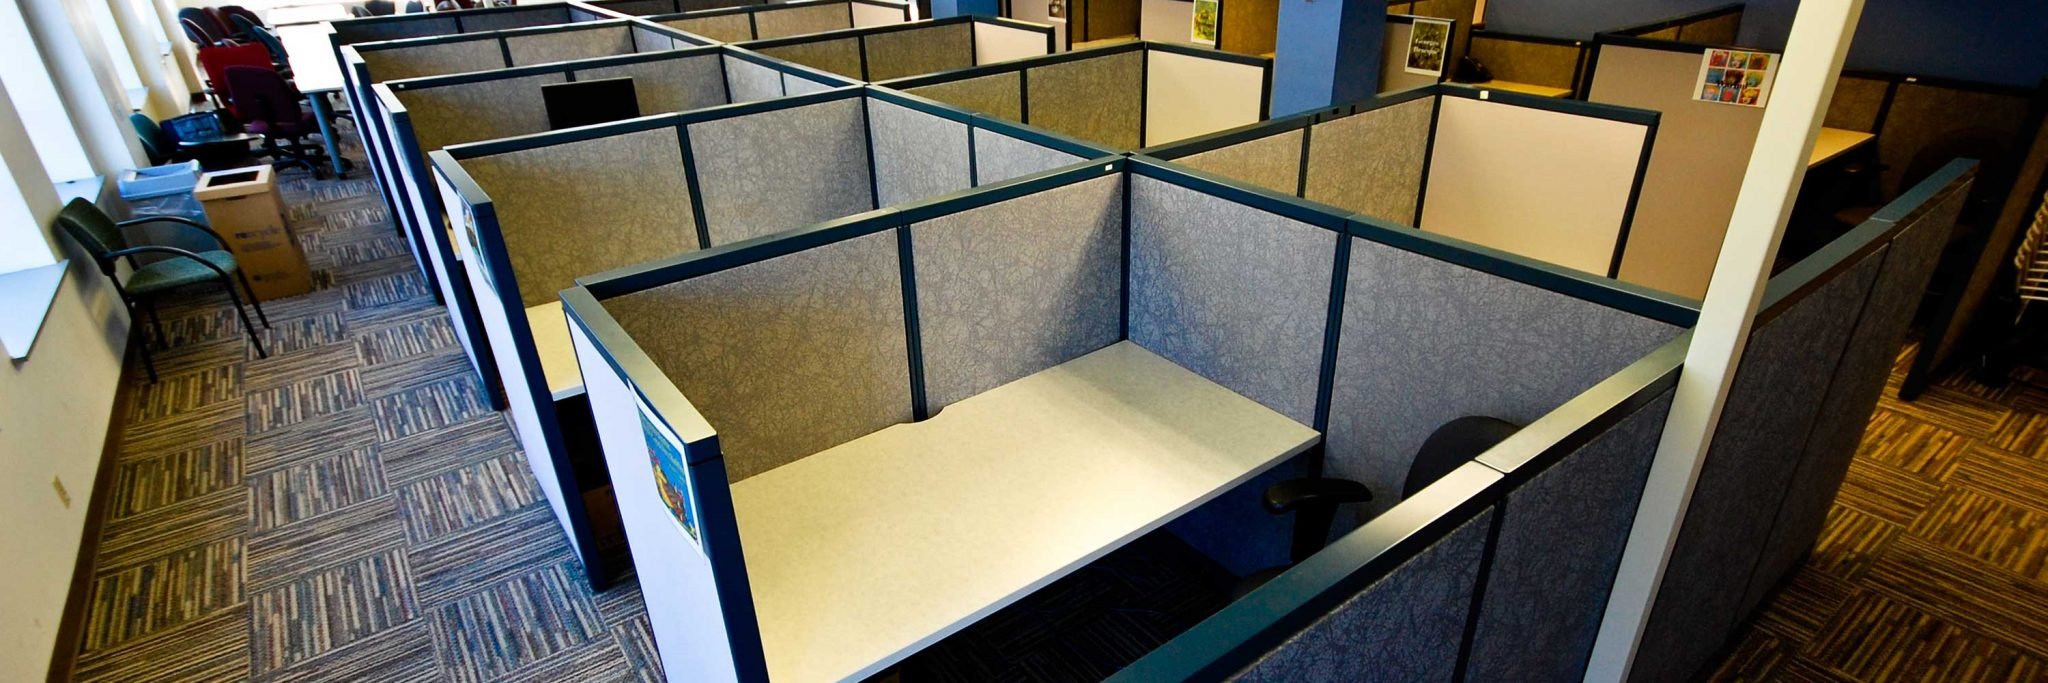 Commercial Junk Removal Services Banner - Picture of office cubical space